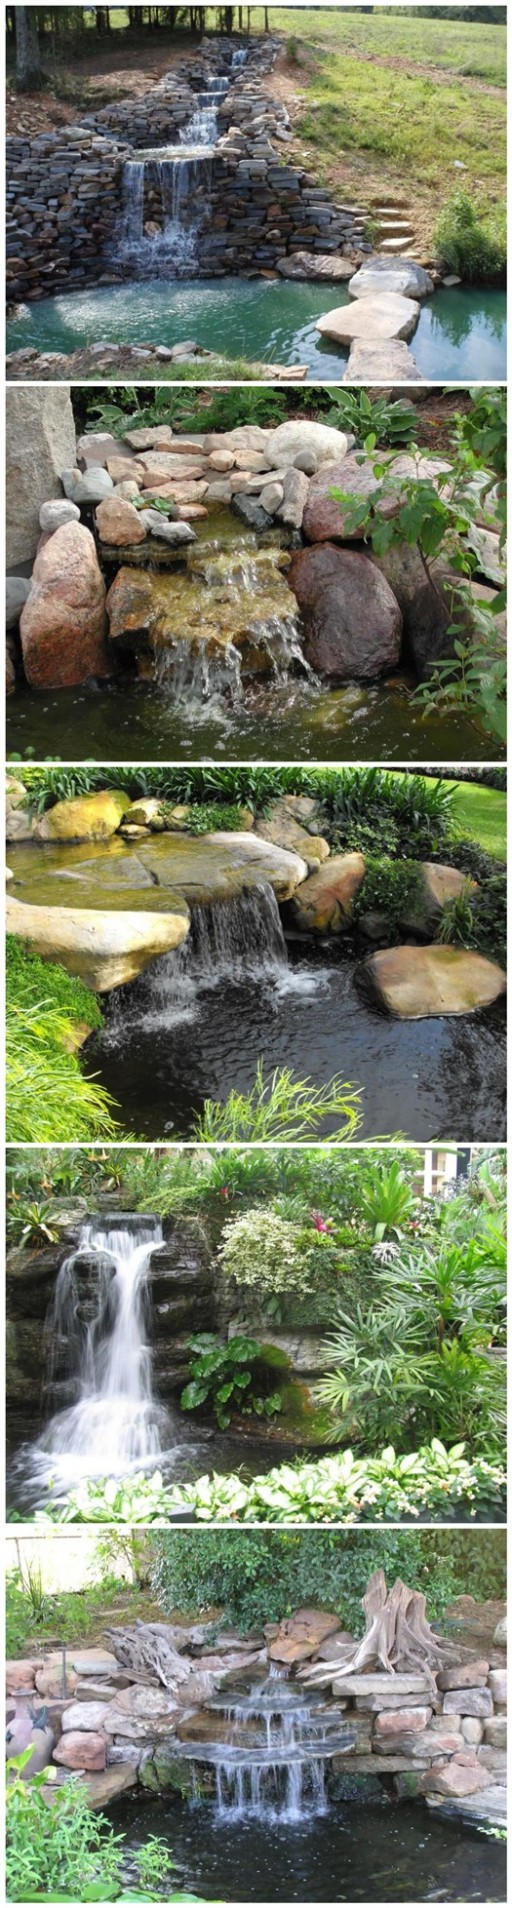 How to build a garden waterfall pond diy tag for Diy small pond with waterfall